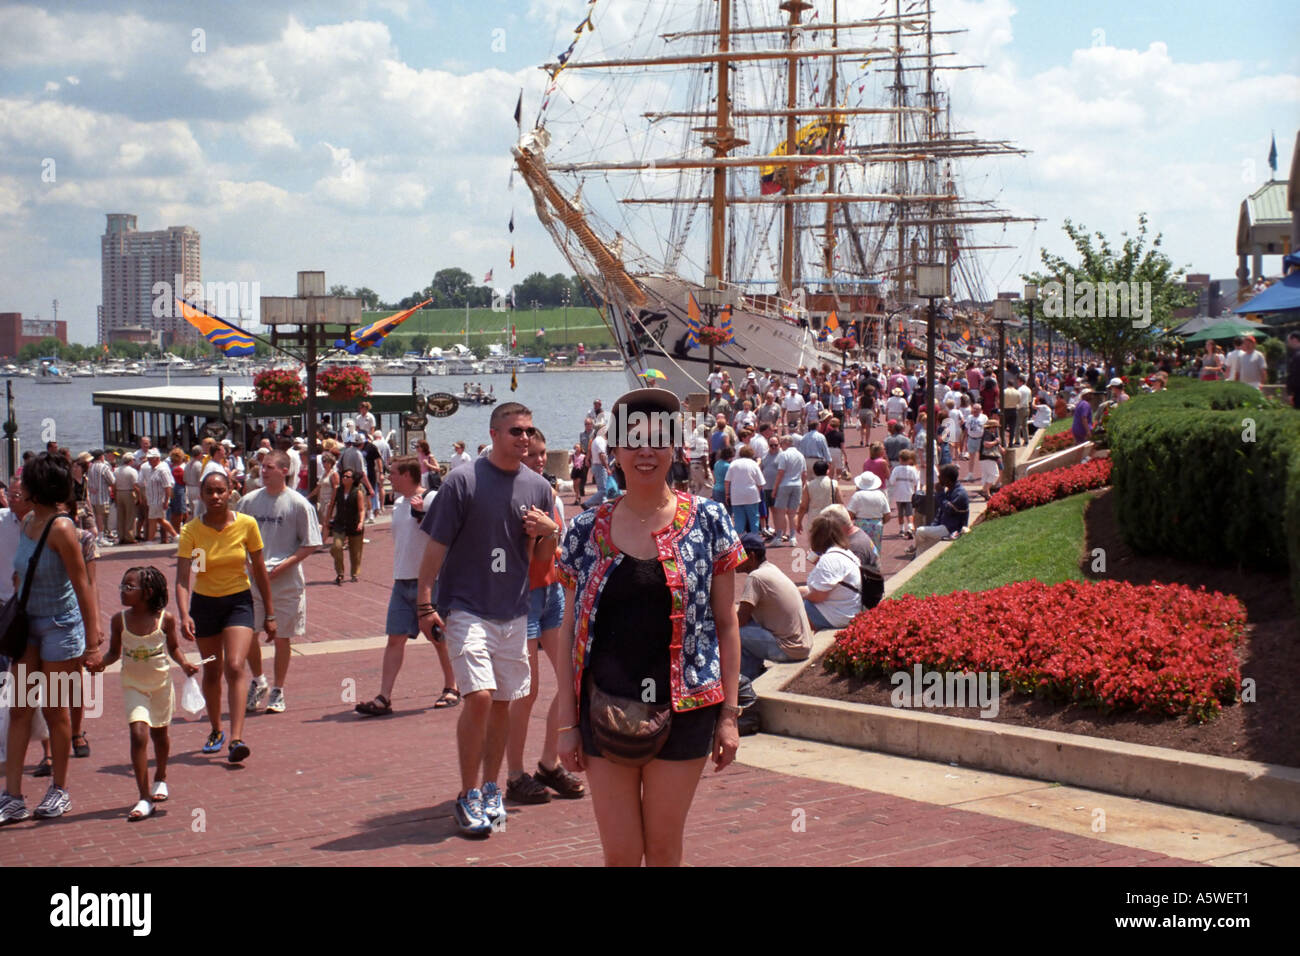 Tourists visiting Baltimore during Opsail - Stock Image